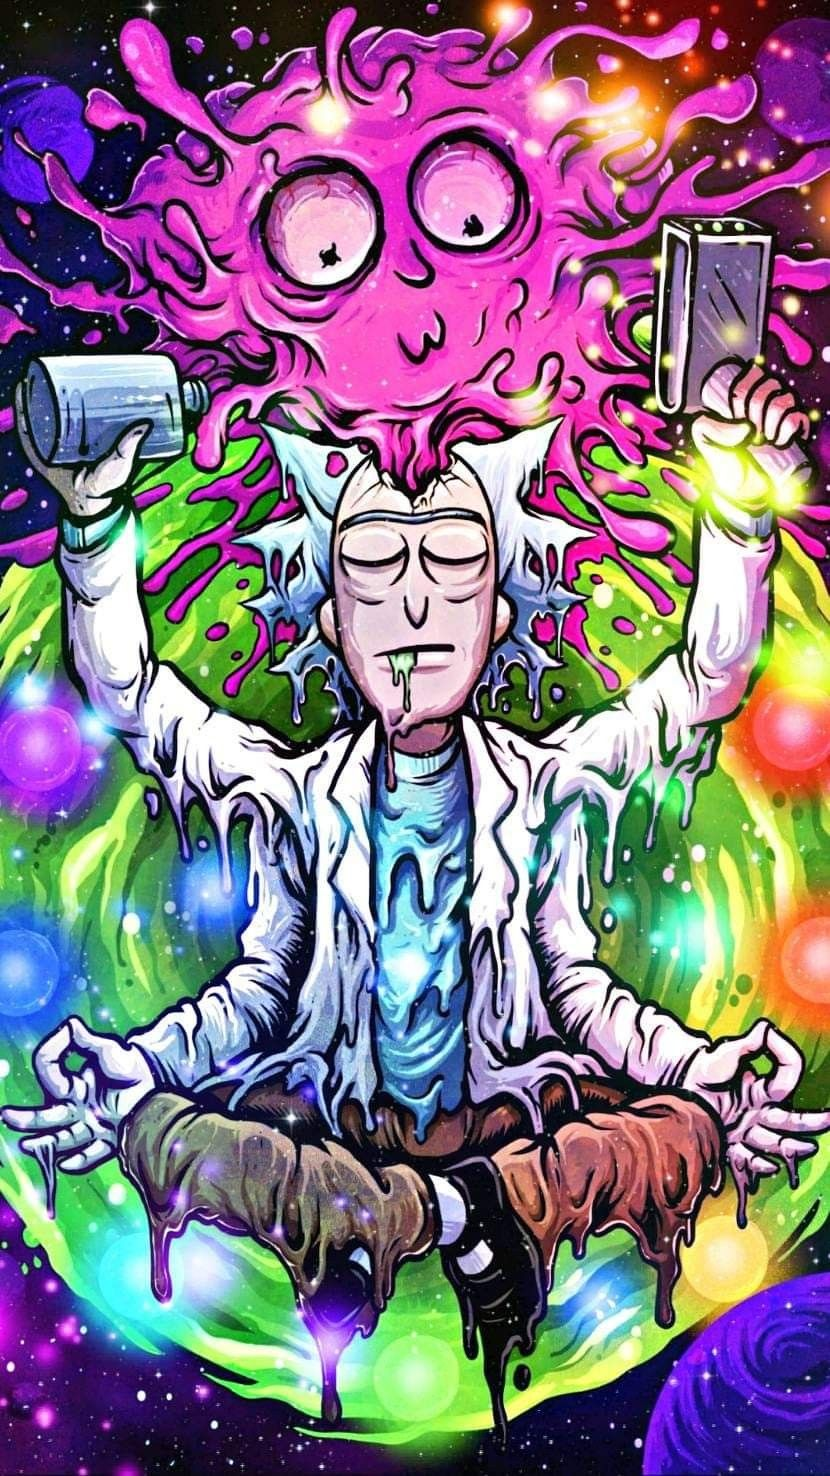 Pin By Kingsley Parry On Maestro Rick And Morty Poster Simpsons Art Trippy Wallpaper